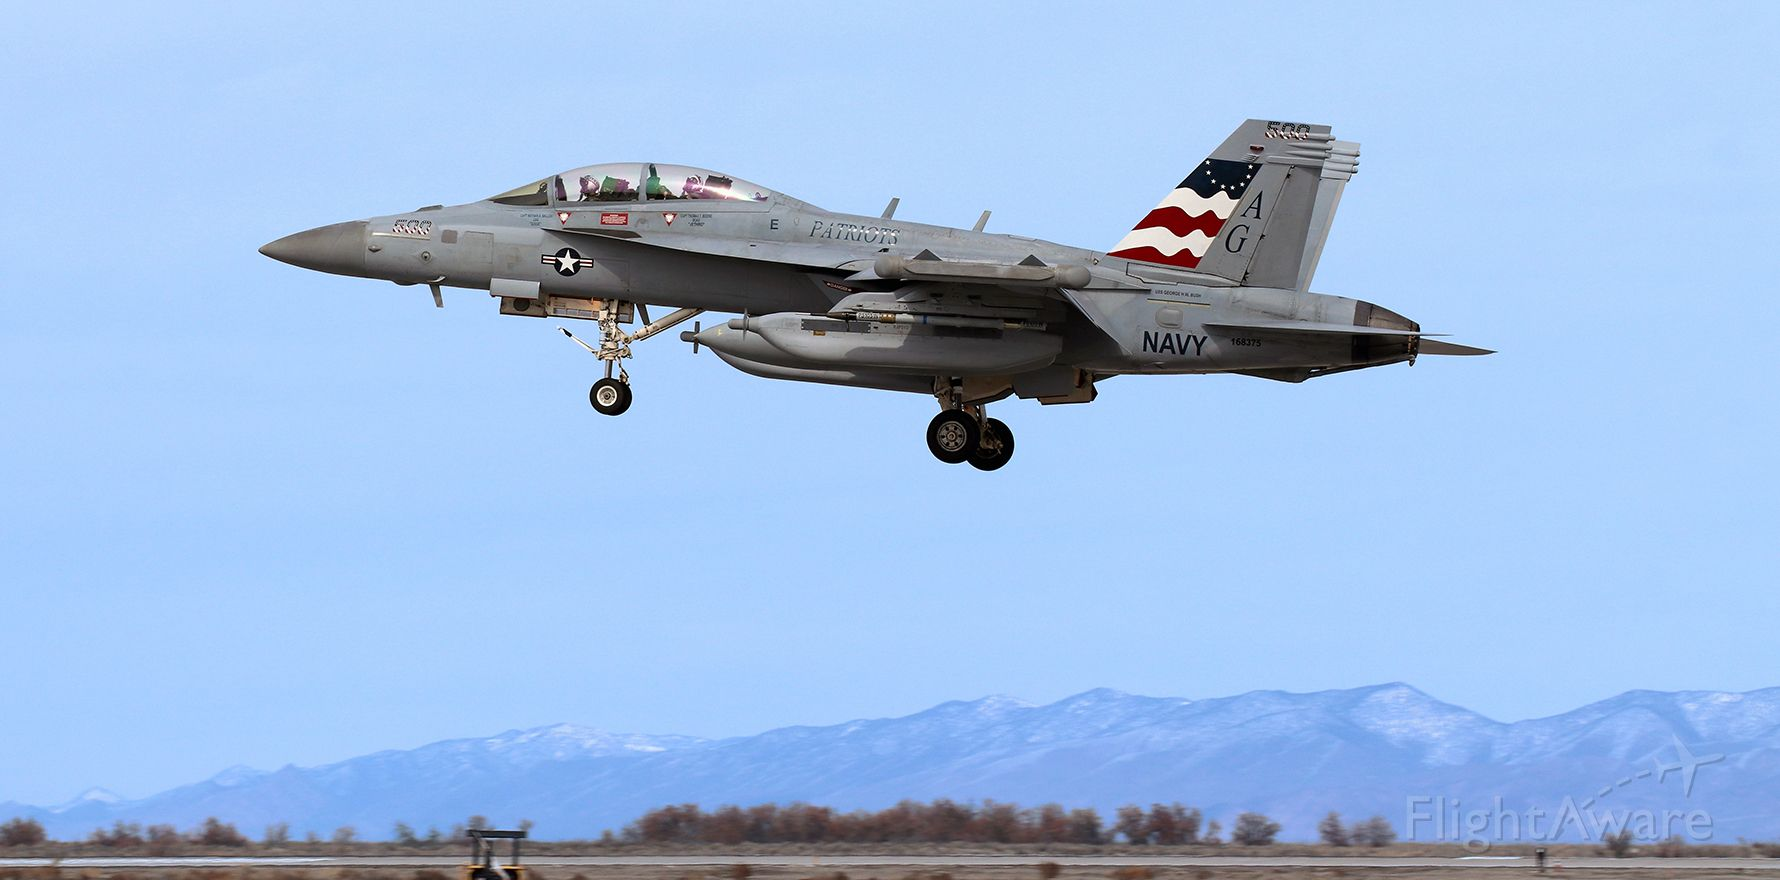 """McDonnell Douglas FA-18 Hornet (16-8375) - United States Navy Boeing E/A-18G Growler (168375)<br />VAQ 140 (Electronic Attack Squadron One Four Oh) """"Patriots""""<br />Current Home Port: NAS Whidbey Island, WA<br />Assigned to the USS George H.W. Bush (CVN 77) .... Carrier Air Wing Seven (CVW 7)<br /><br />The VAQ 140 """"Patriots"""" CAG colorbird landing on 31L after participating in a combat training sortie."""